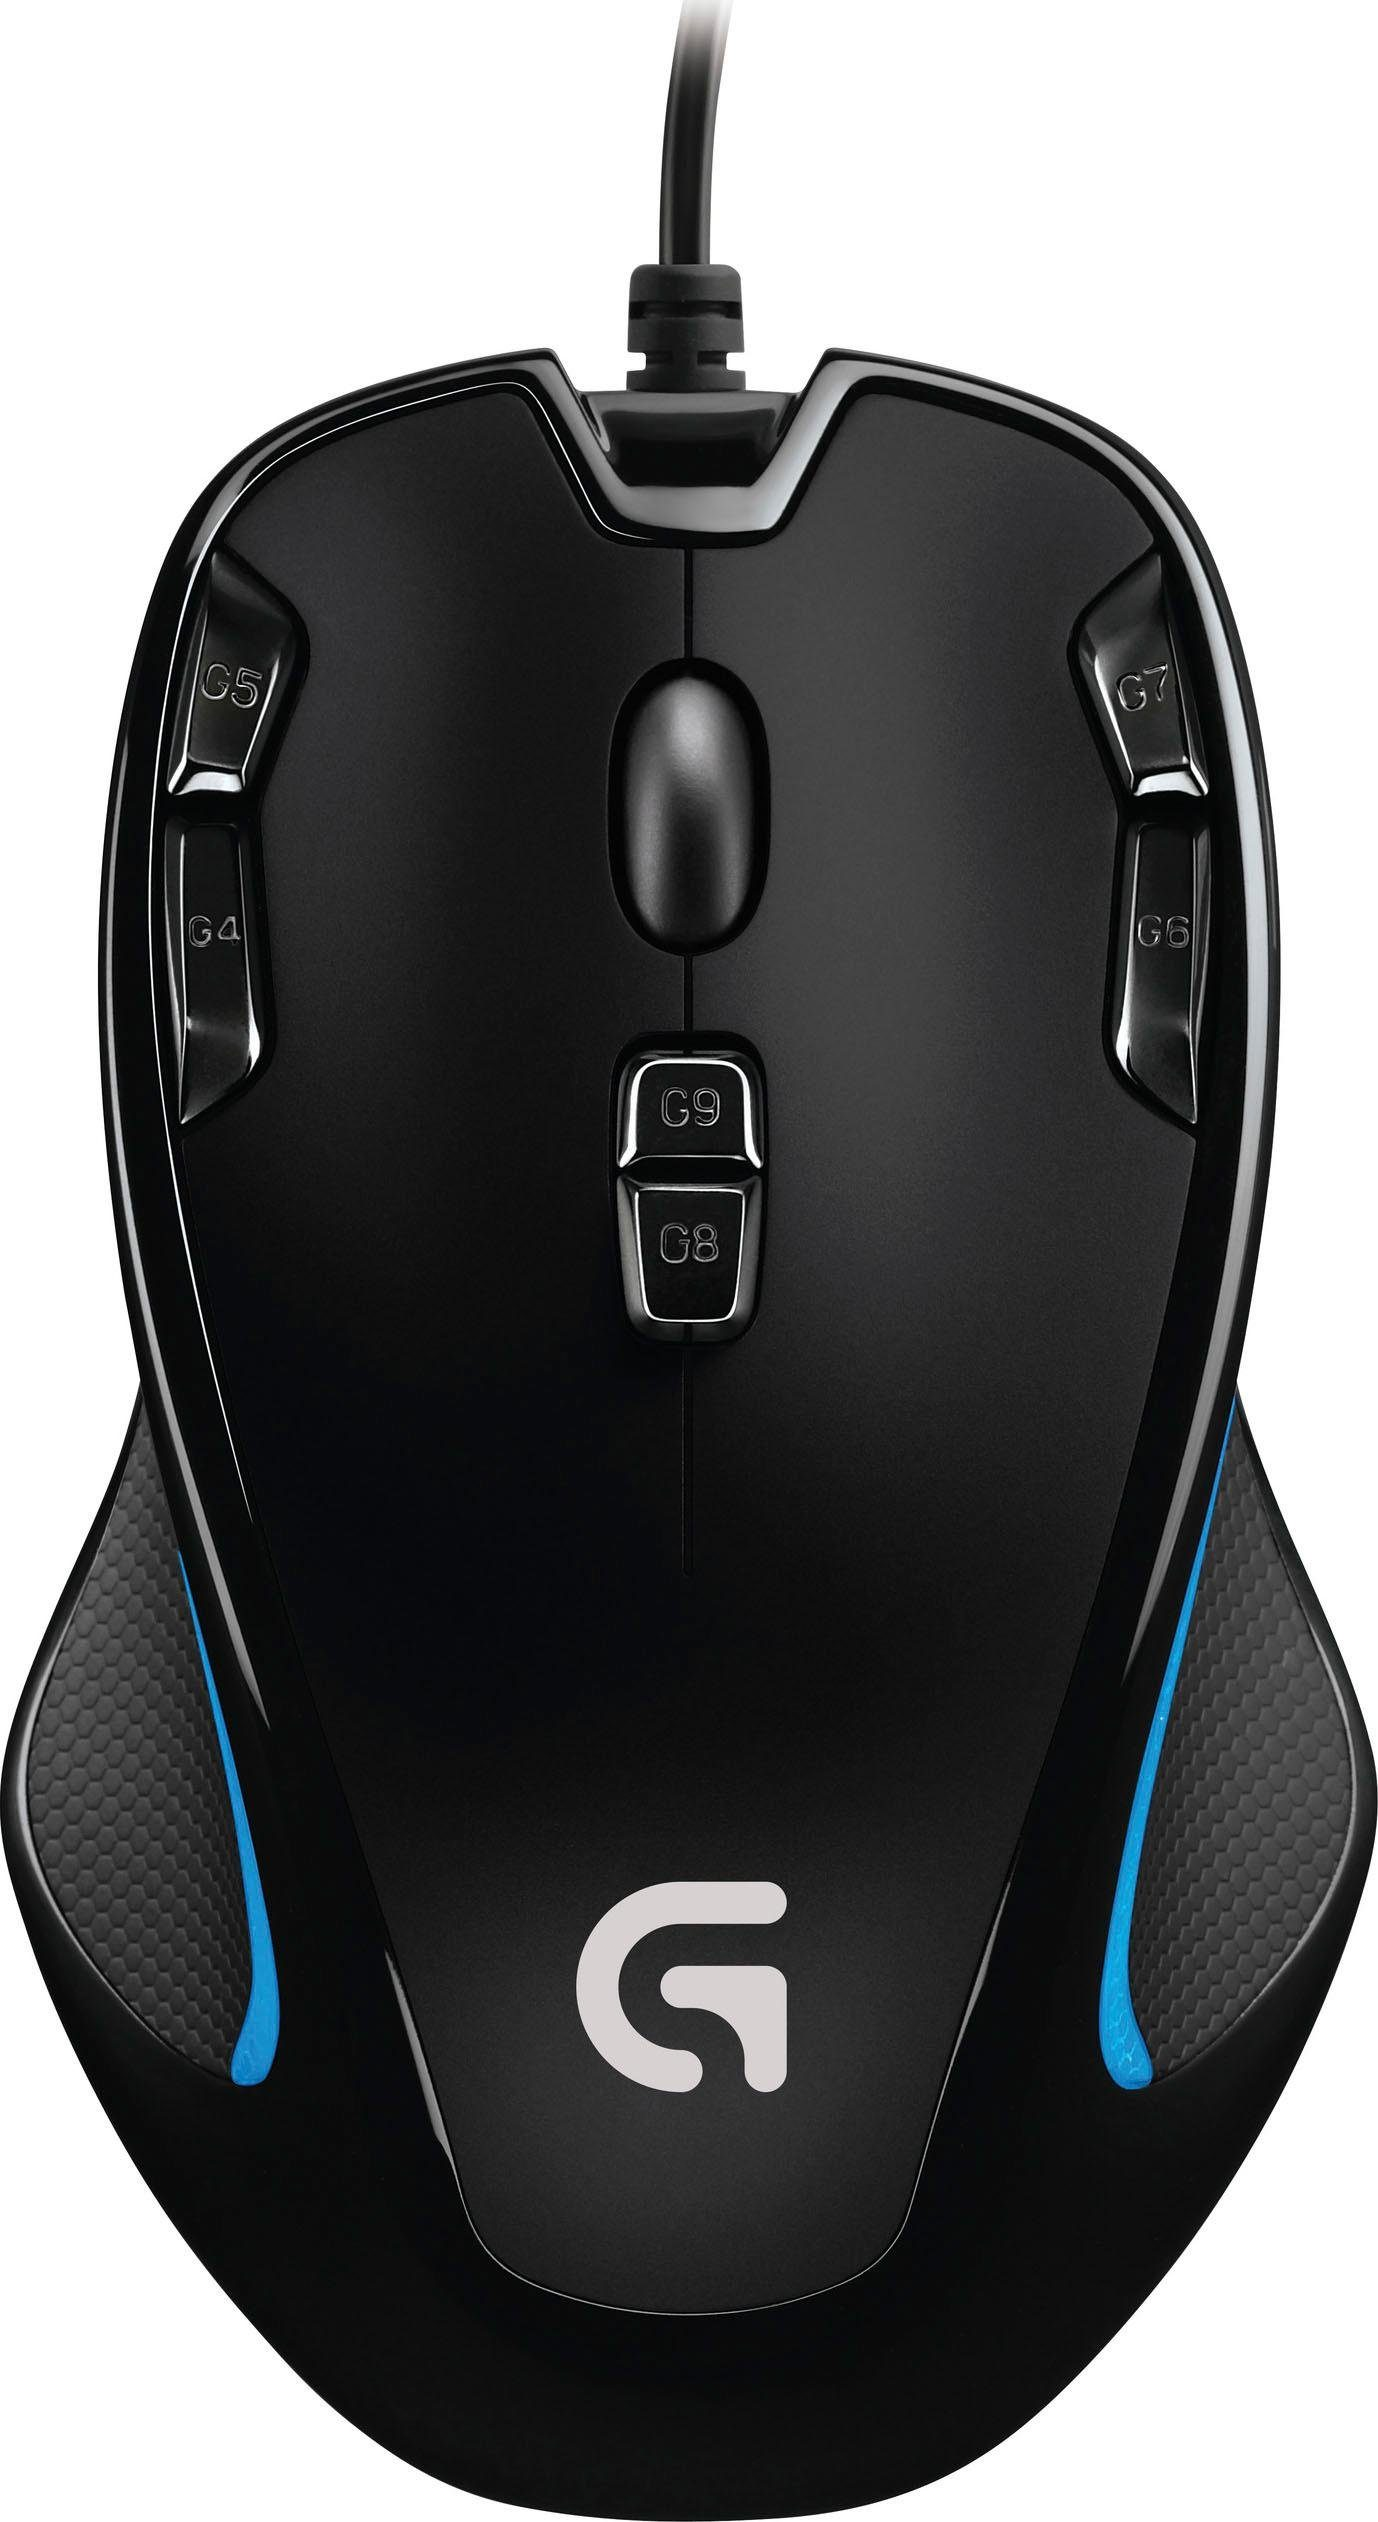 Logitech Games »G300s Optical G-Series« Gaming-Maus (kabelgebunden)